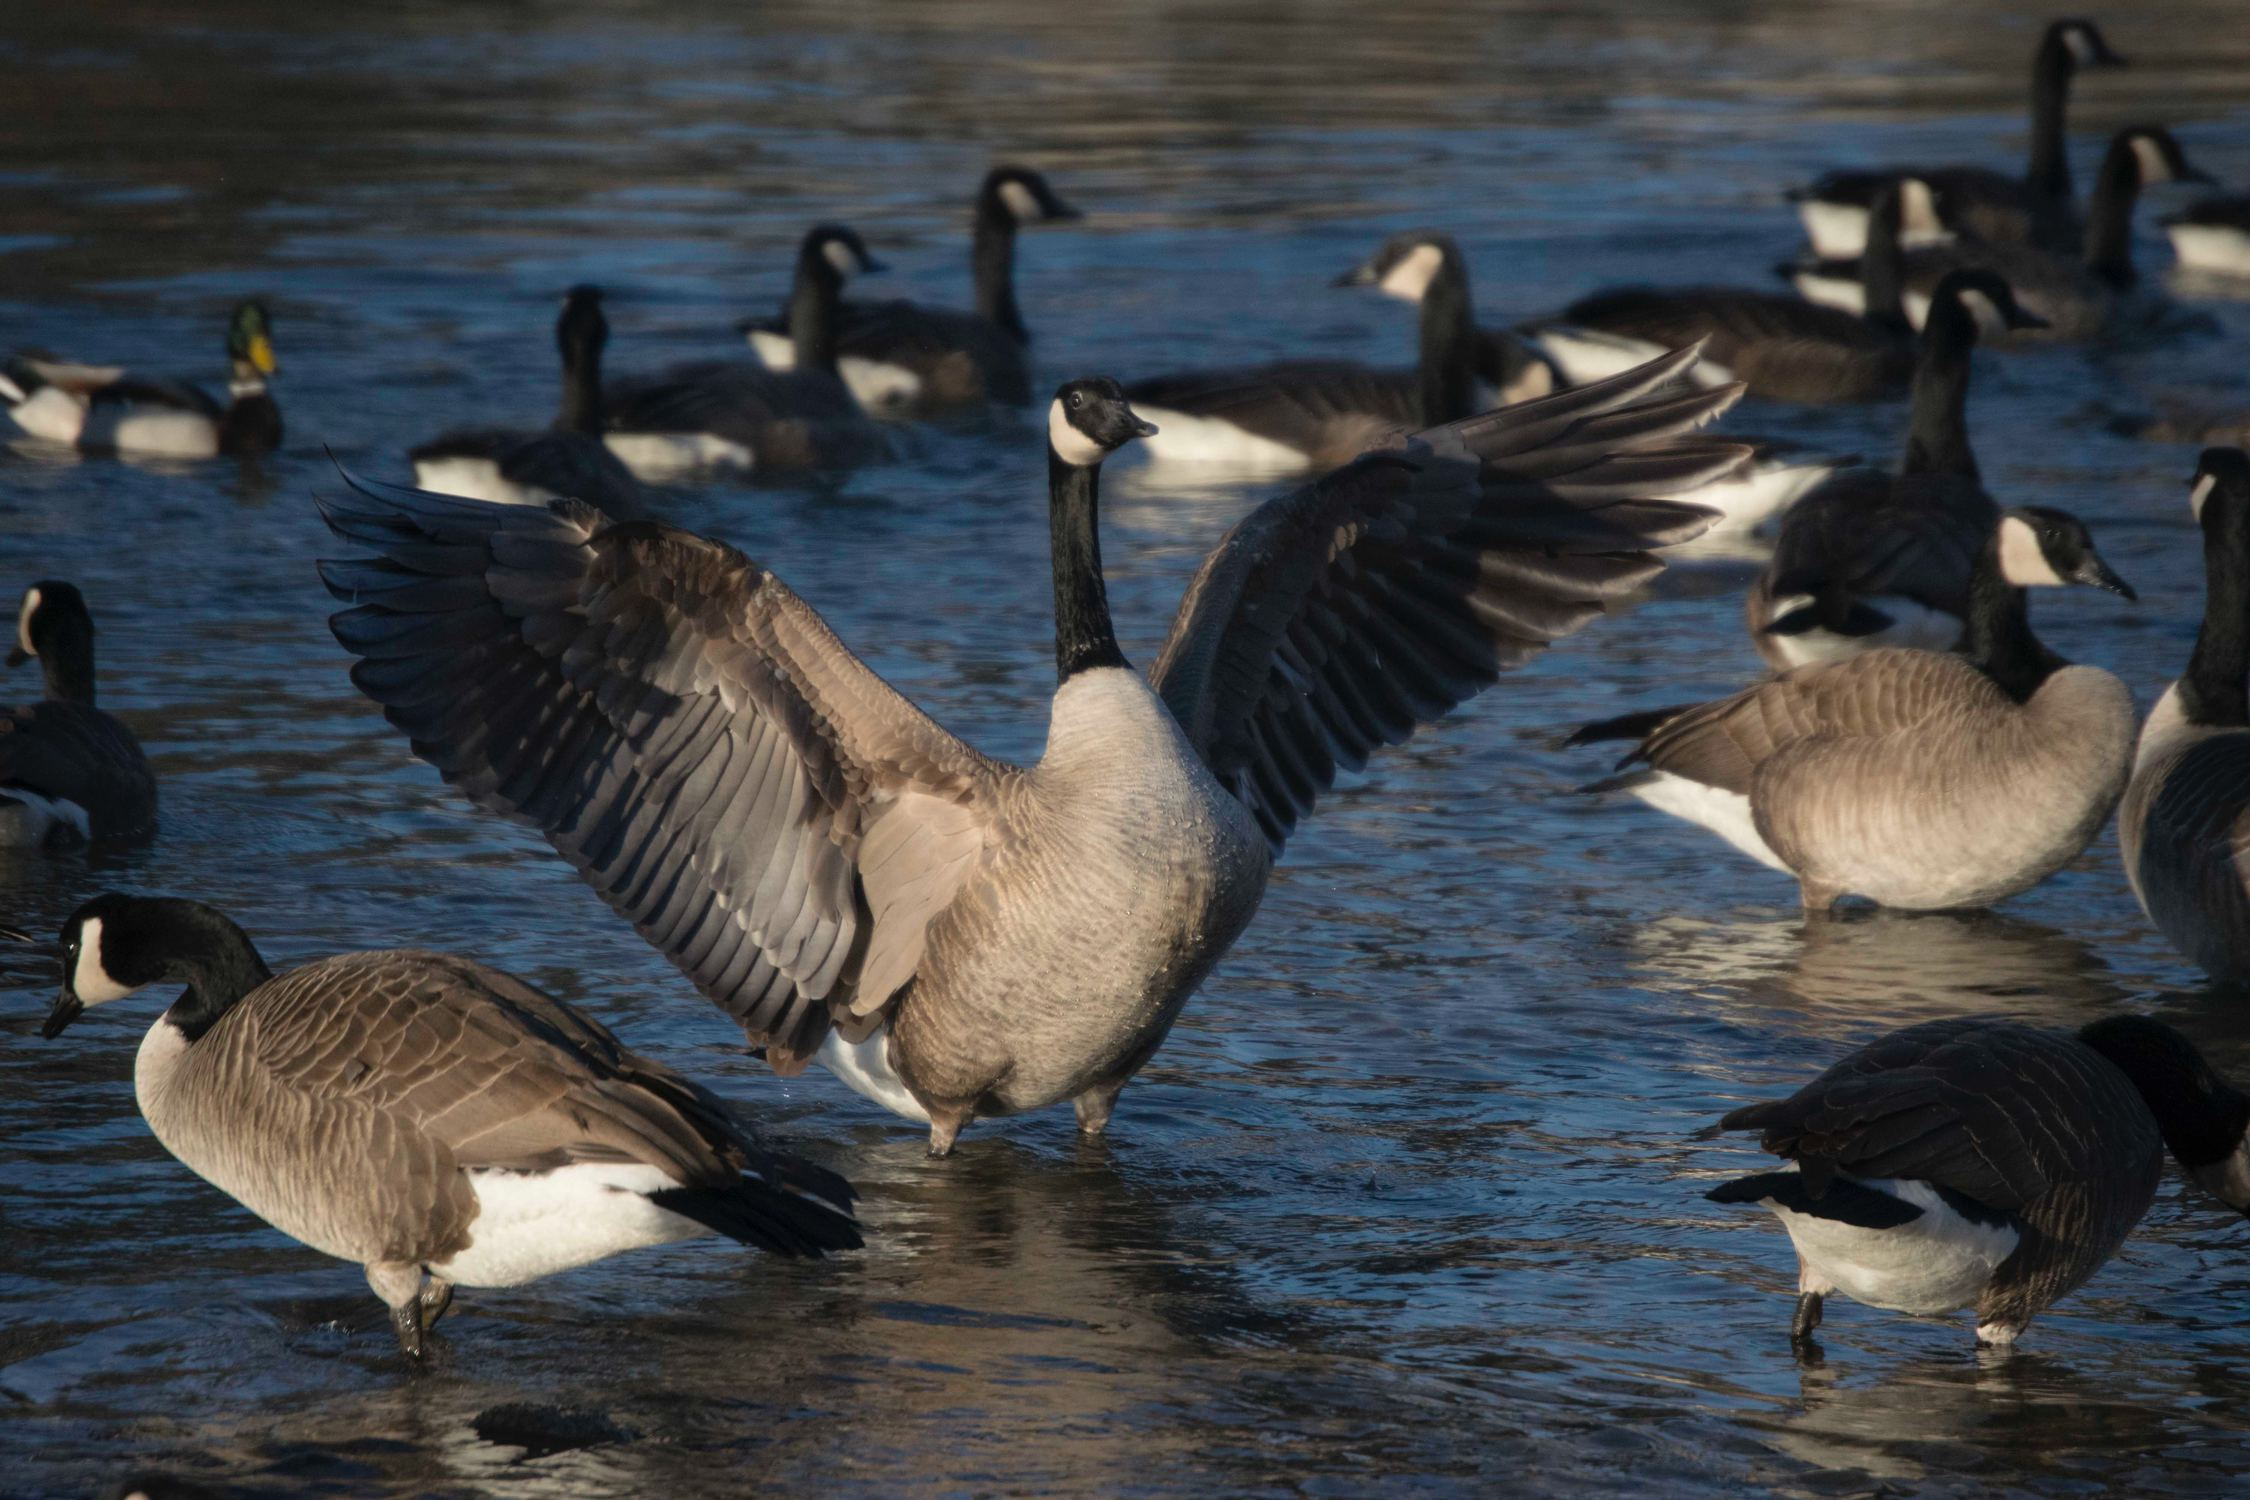 Goose Decoy Spreads - Big Game Logic